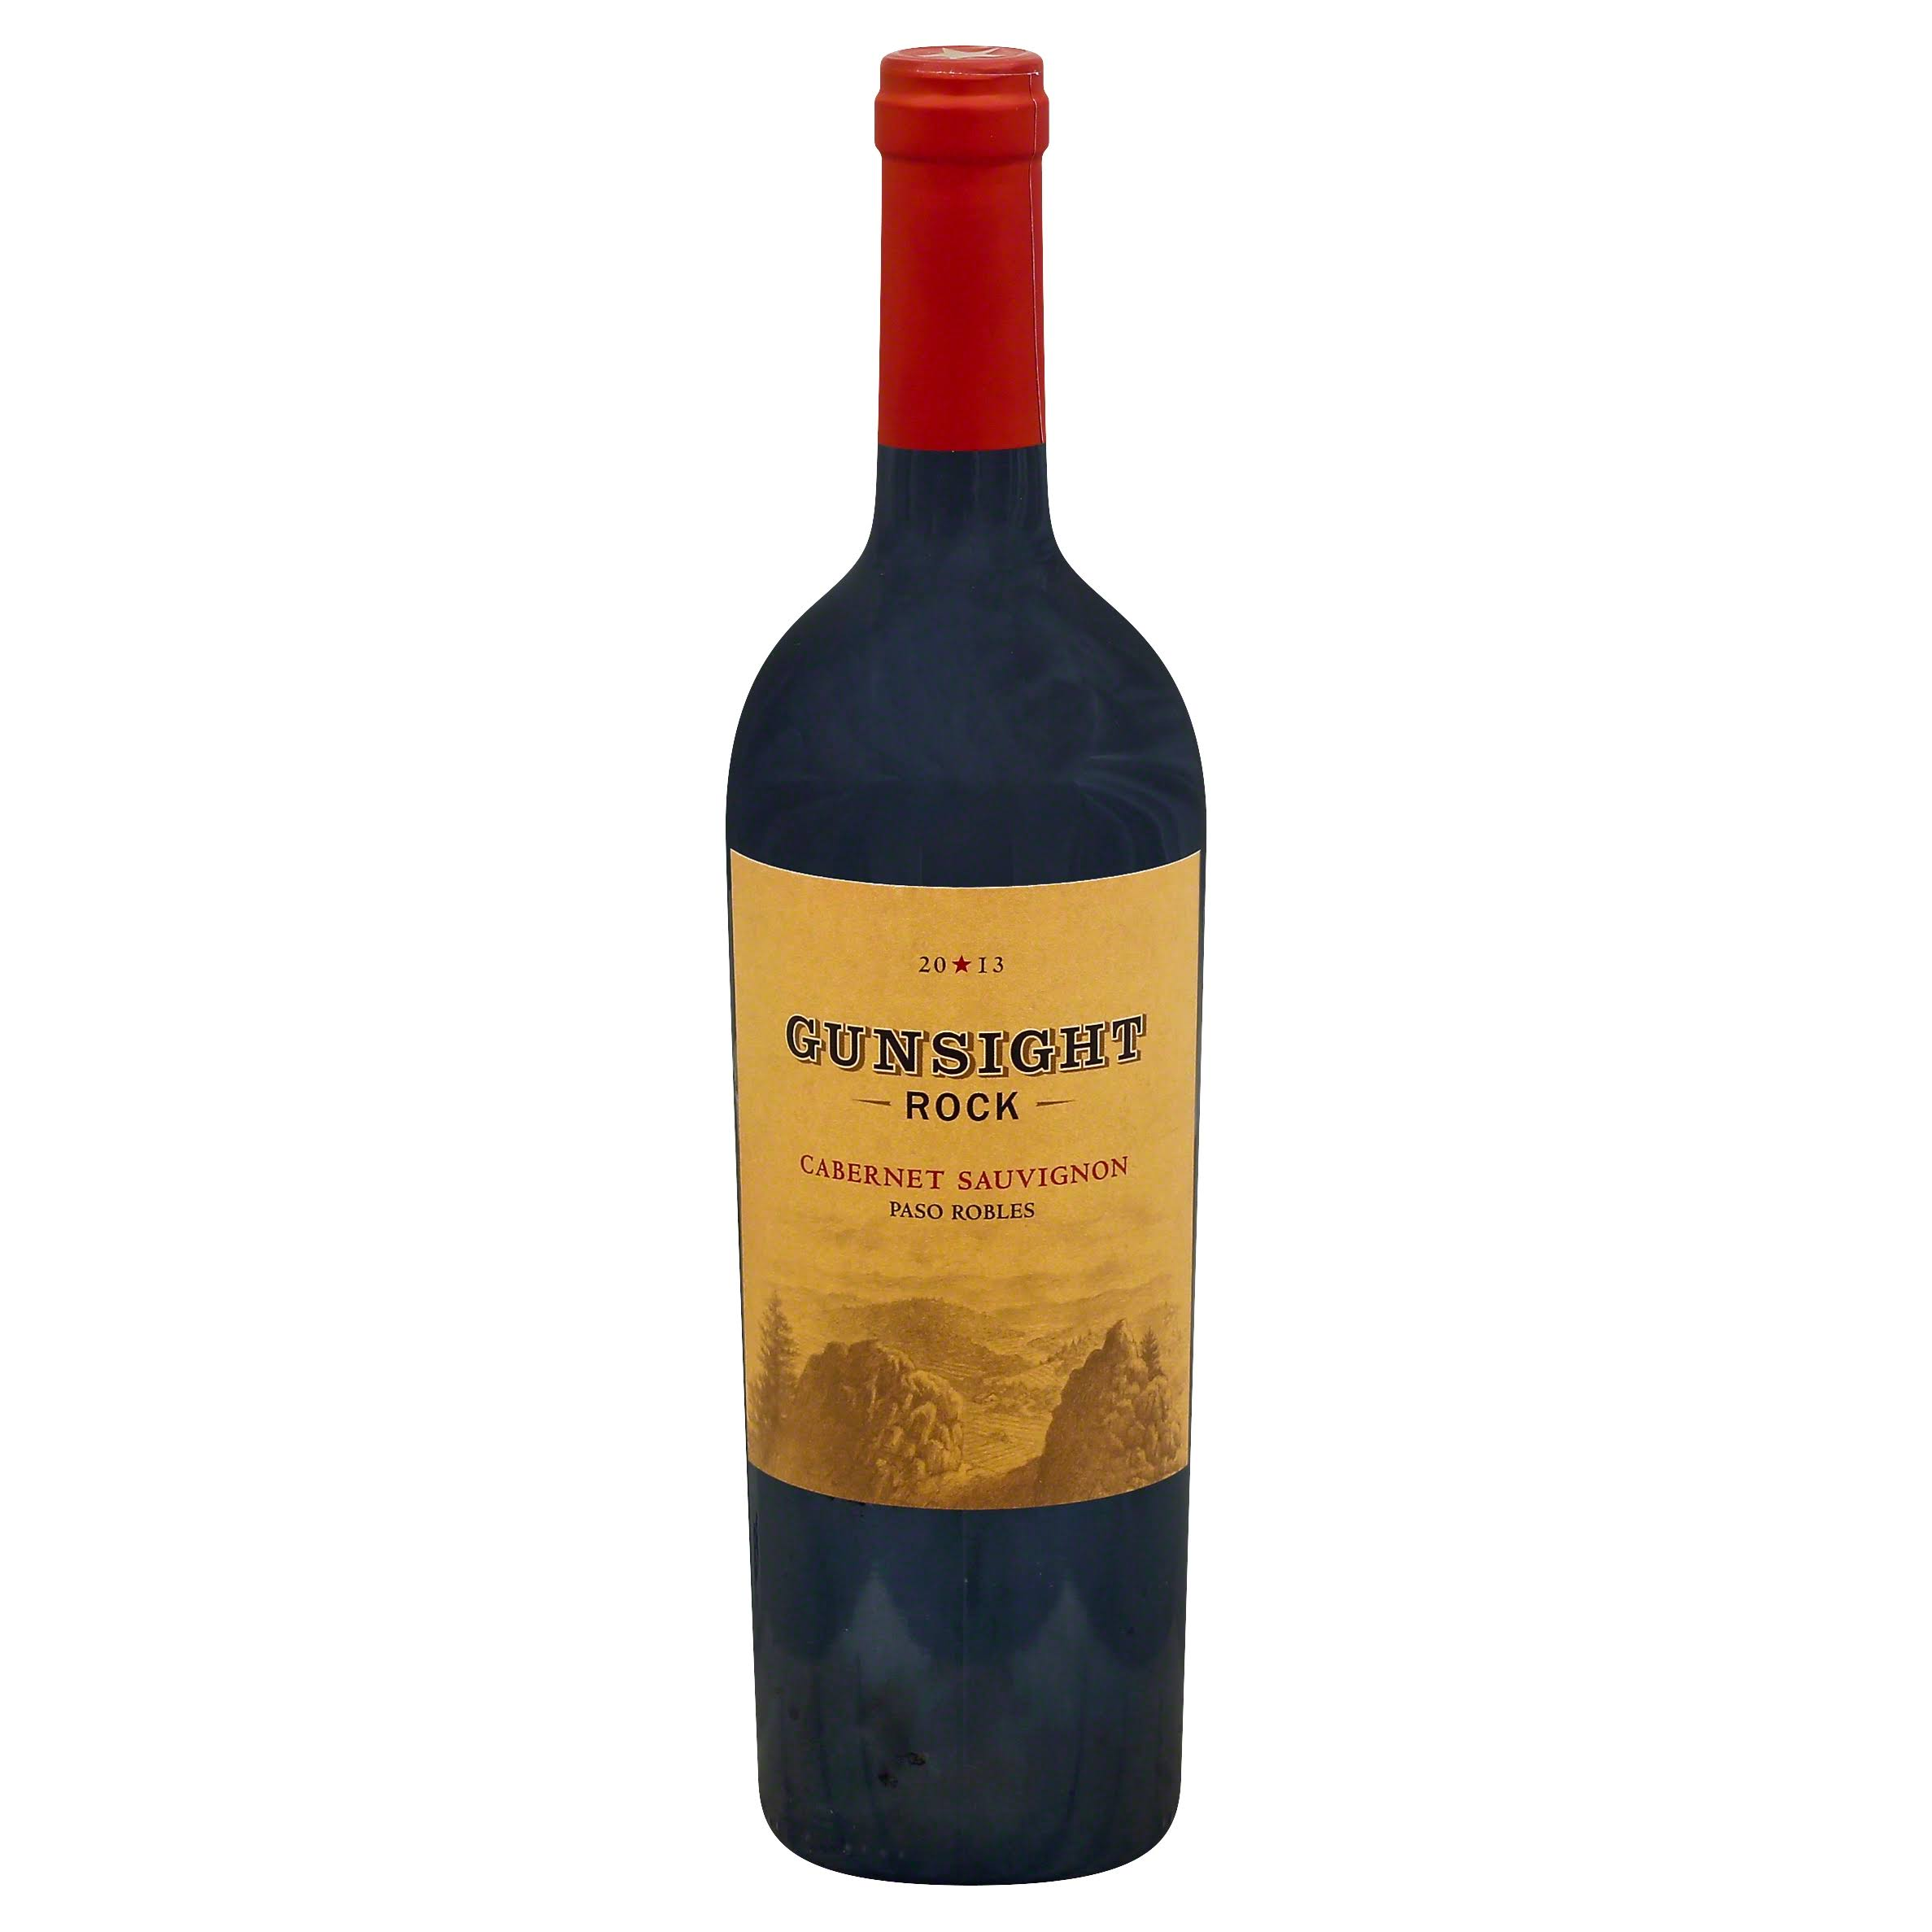 Gunsight Rock Cabernet Sauvignon - 2010, Paso Robles